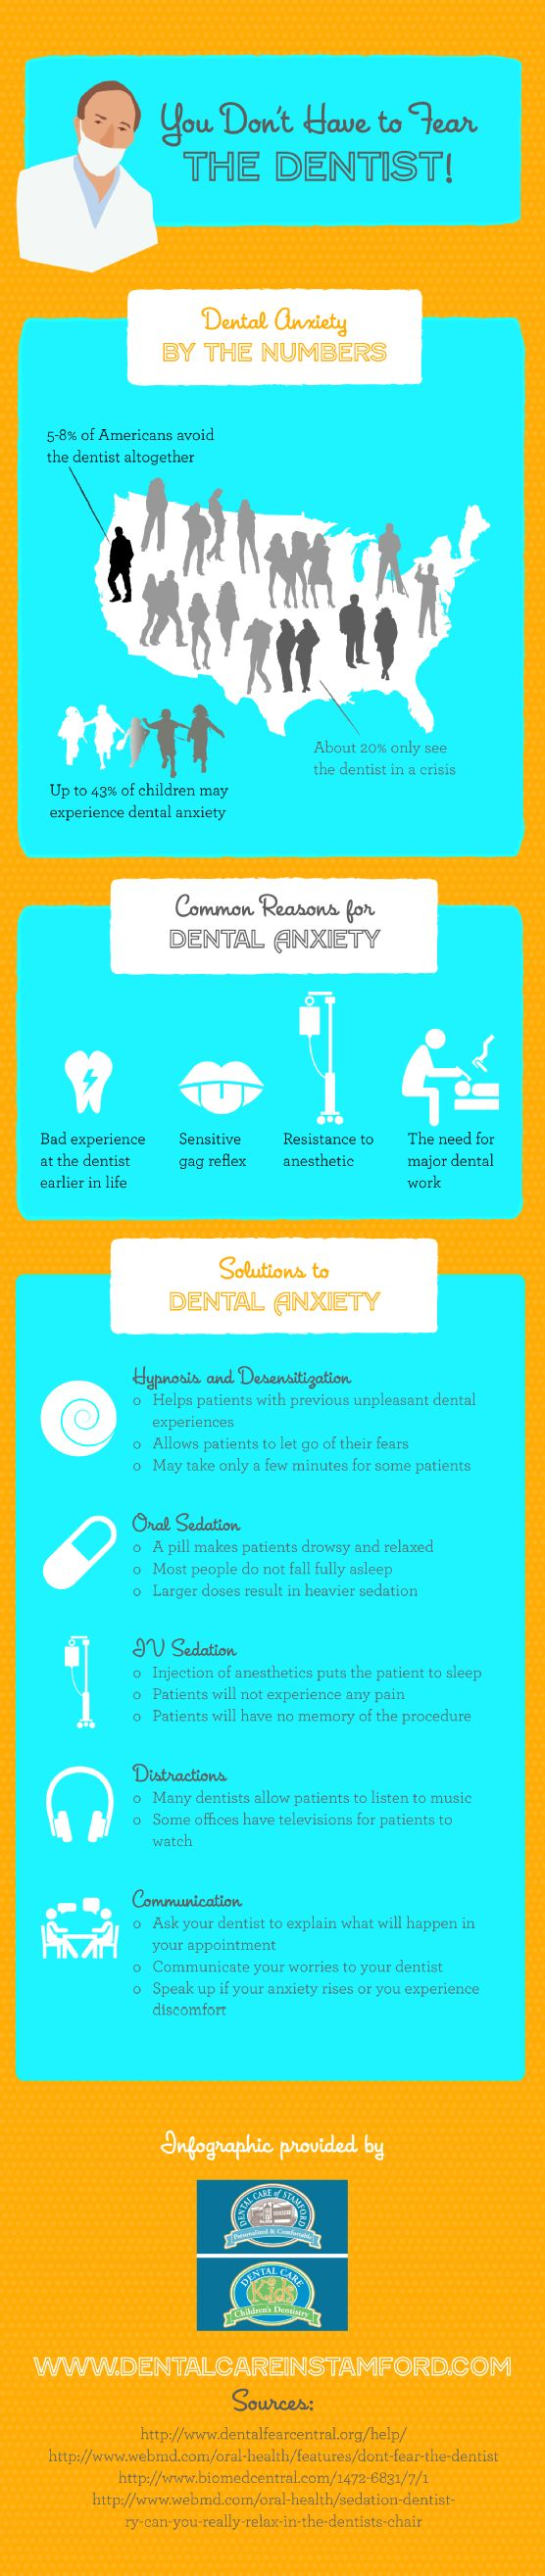 Many patients rely on hypnosis and desensitization, oral sedation, and distractions to overcome issues related to dental anxiety. You can find other popular solutions for dental anxiety on this infographic from a dentist in Stamford. – Mind and Body Therapy